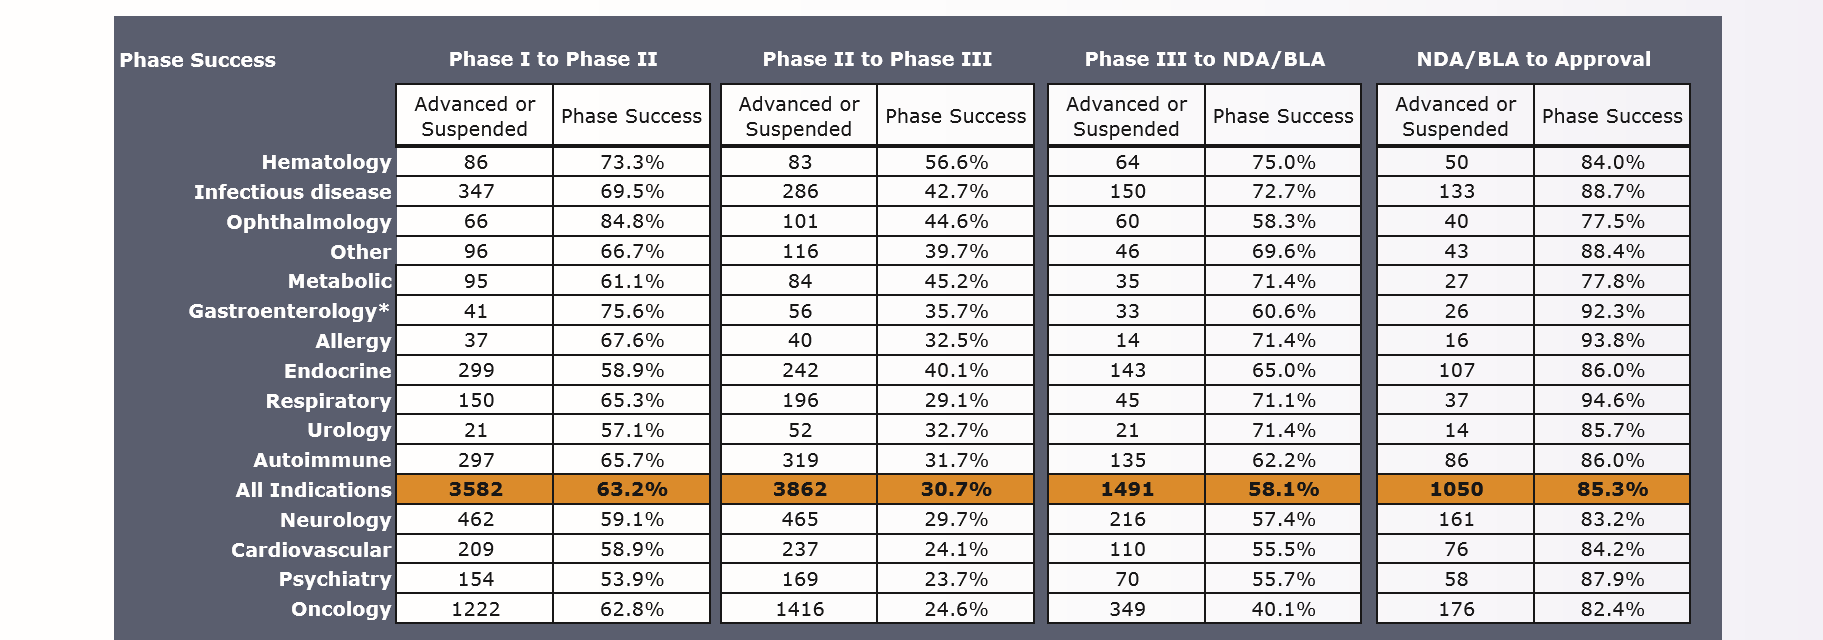 Clinical Development Success Rates.PNG